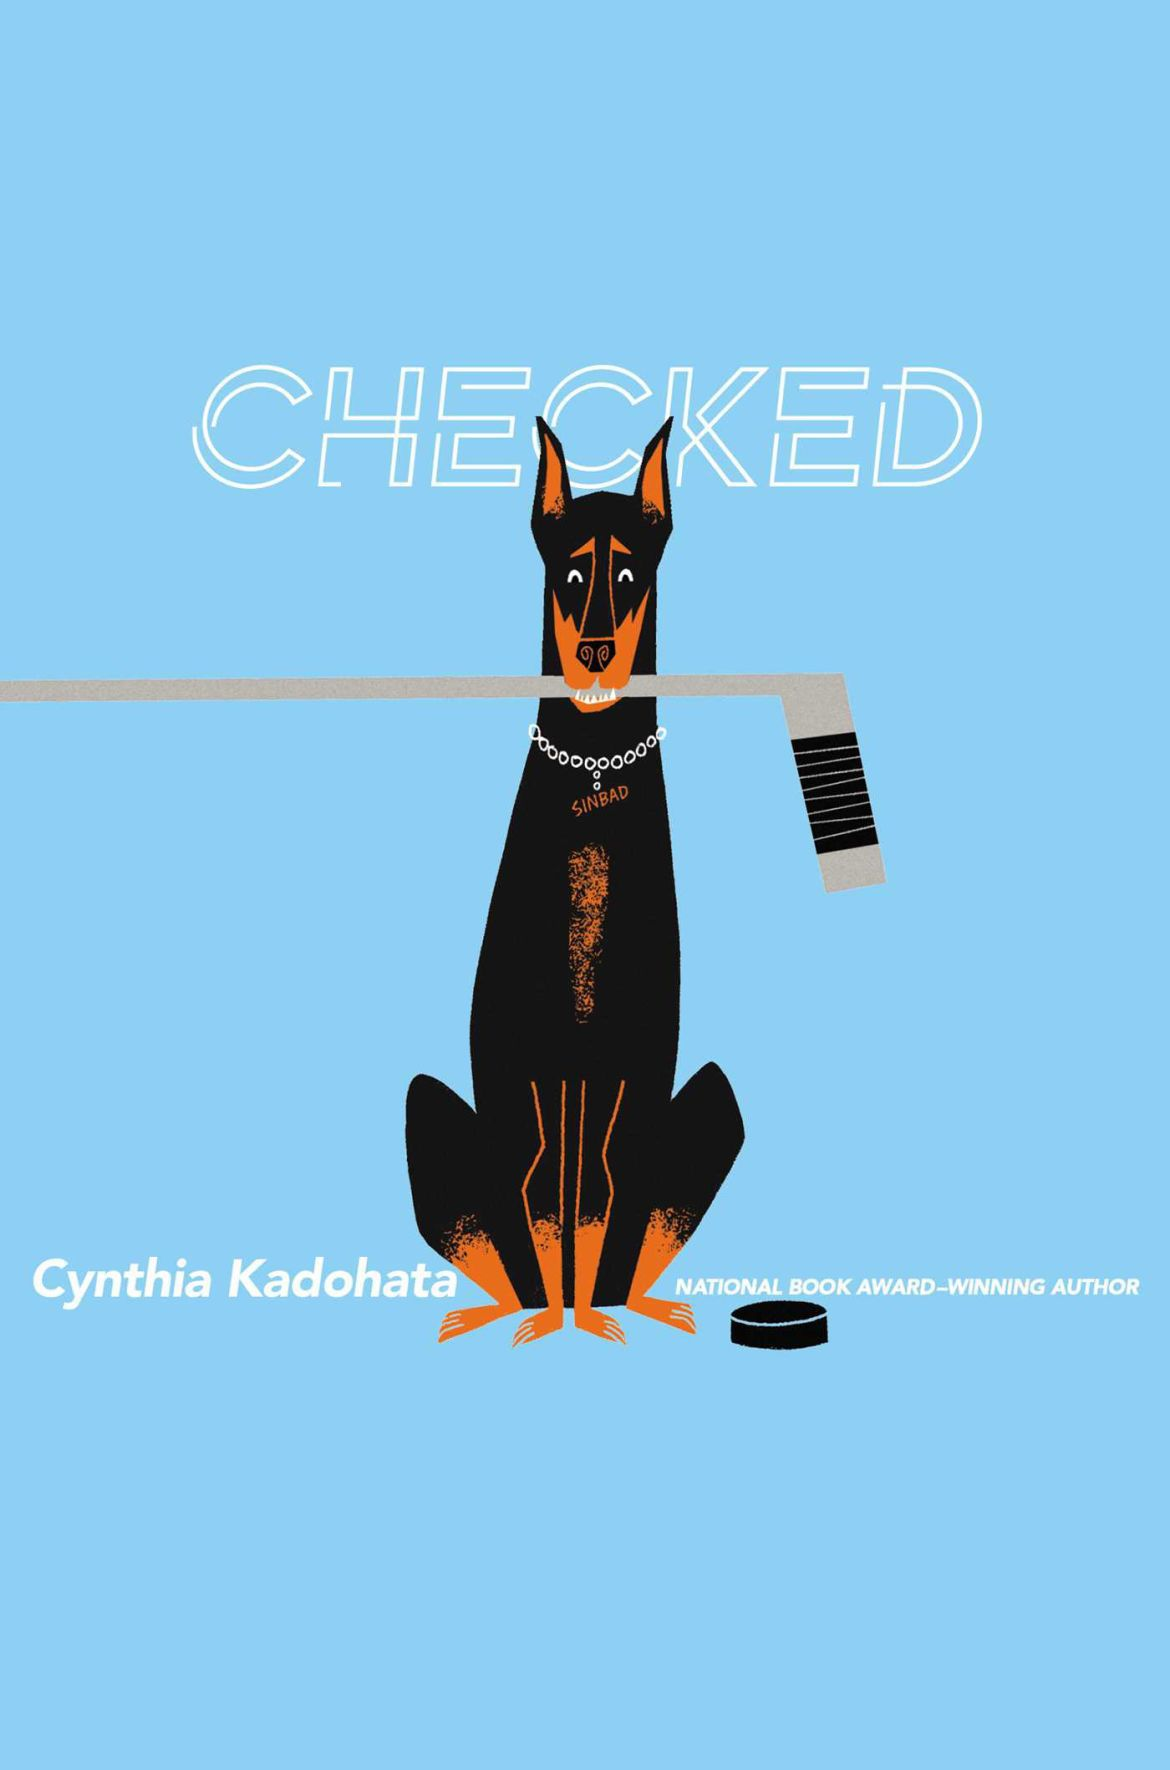 cf1daca4100 Checked  Is it a dog tale with hockey or a hockey tale about a dog ...